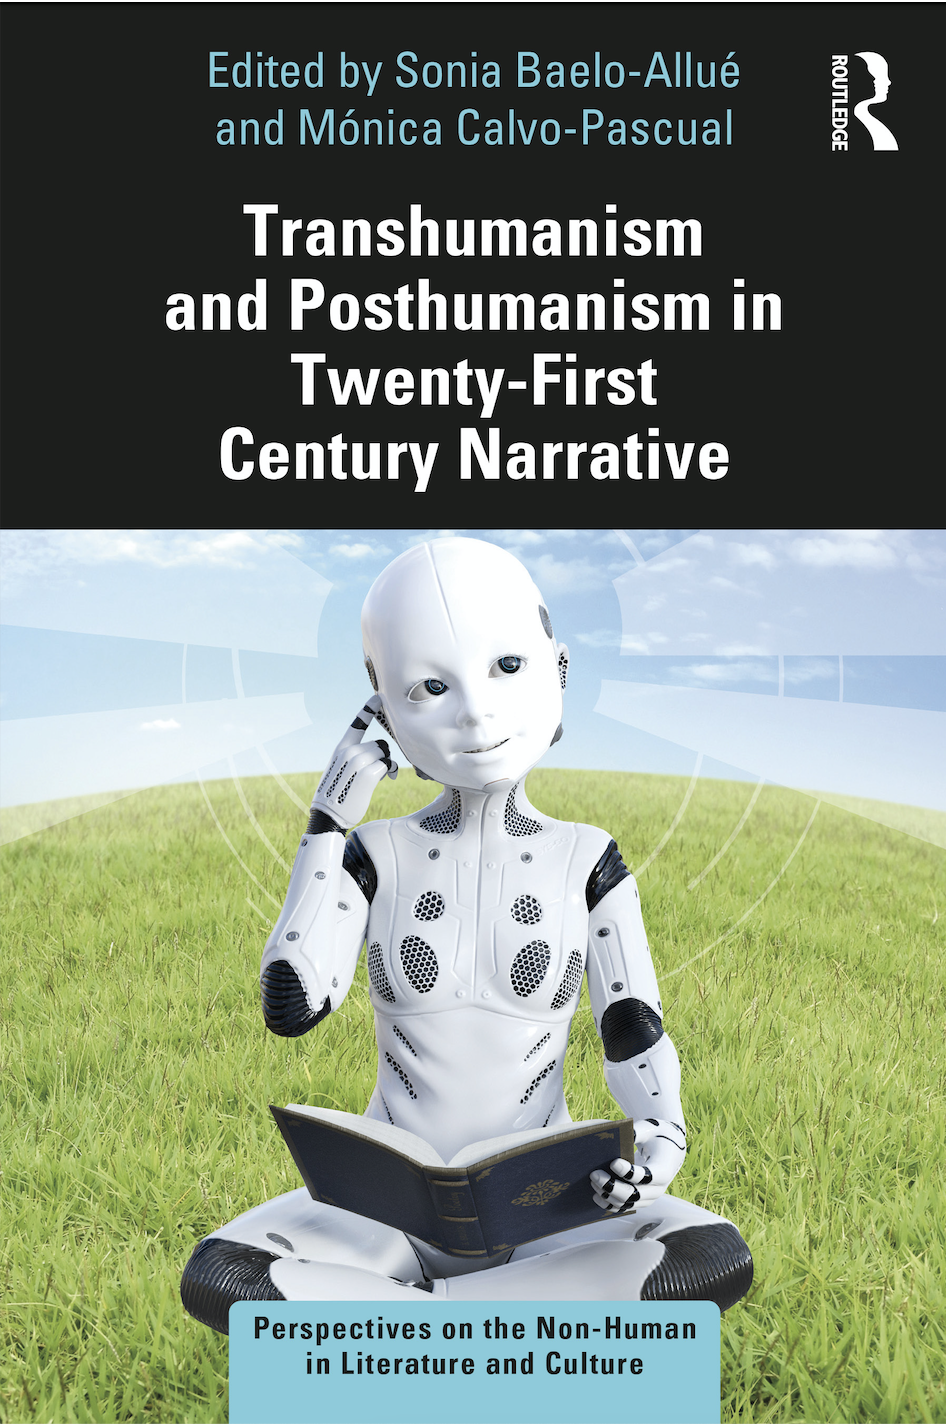 S.Baelo-Allué,M.Calvo-Pascual (ed.). Transhumanism and Posthumanism in Twenty-First Century Narrative